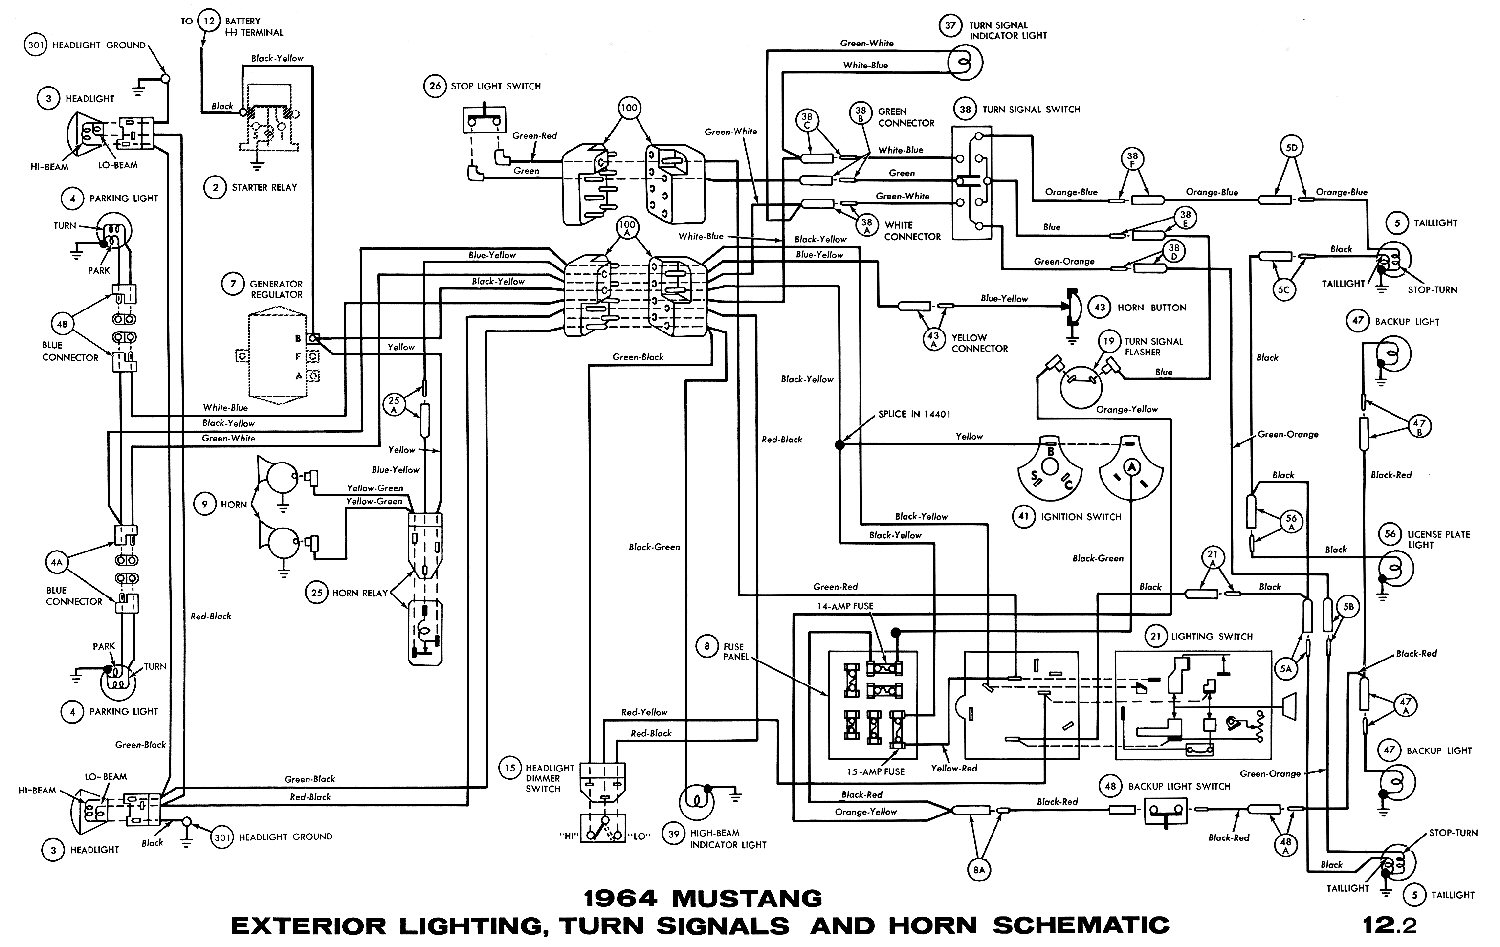 1964i 1965 ford mustang wiring diagram 1999 mustang gt wiring diagram 1965 ford mustang wiring diagrams at panicattacktreatment.co